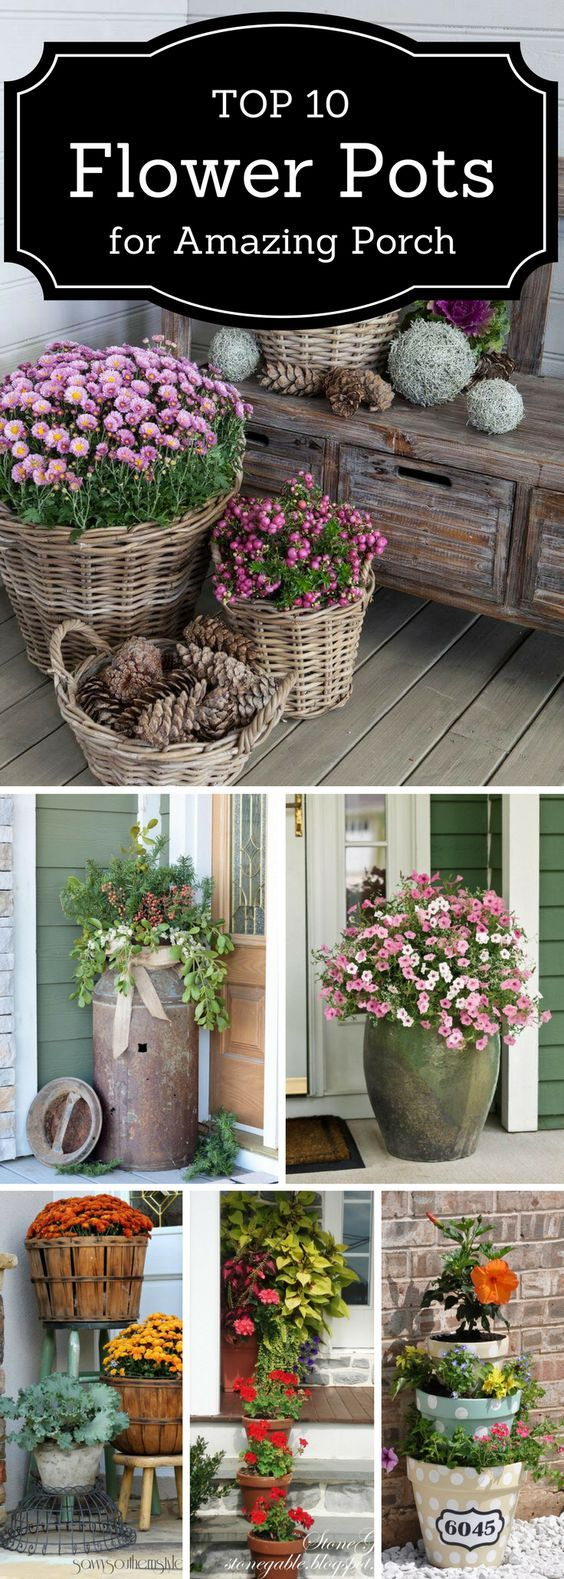 Top 10 Flower Pots That Will Make Your Porch Amazing